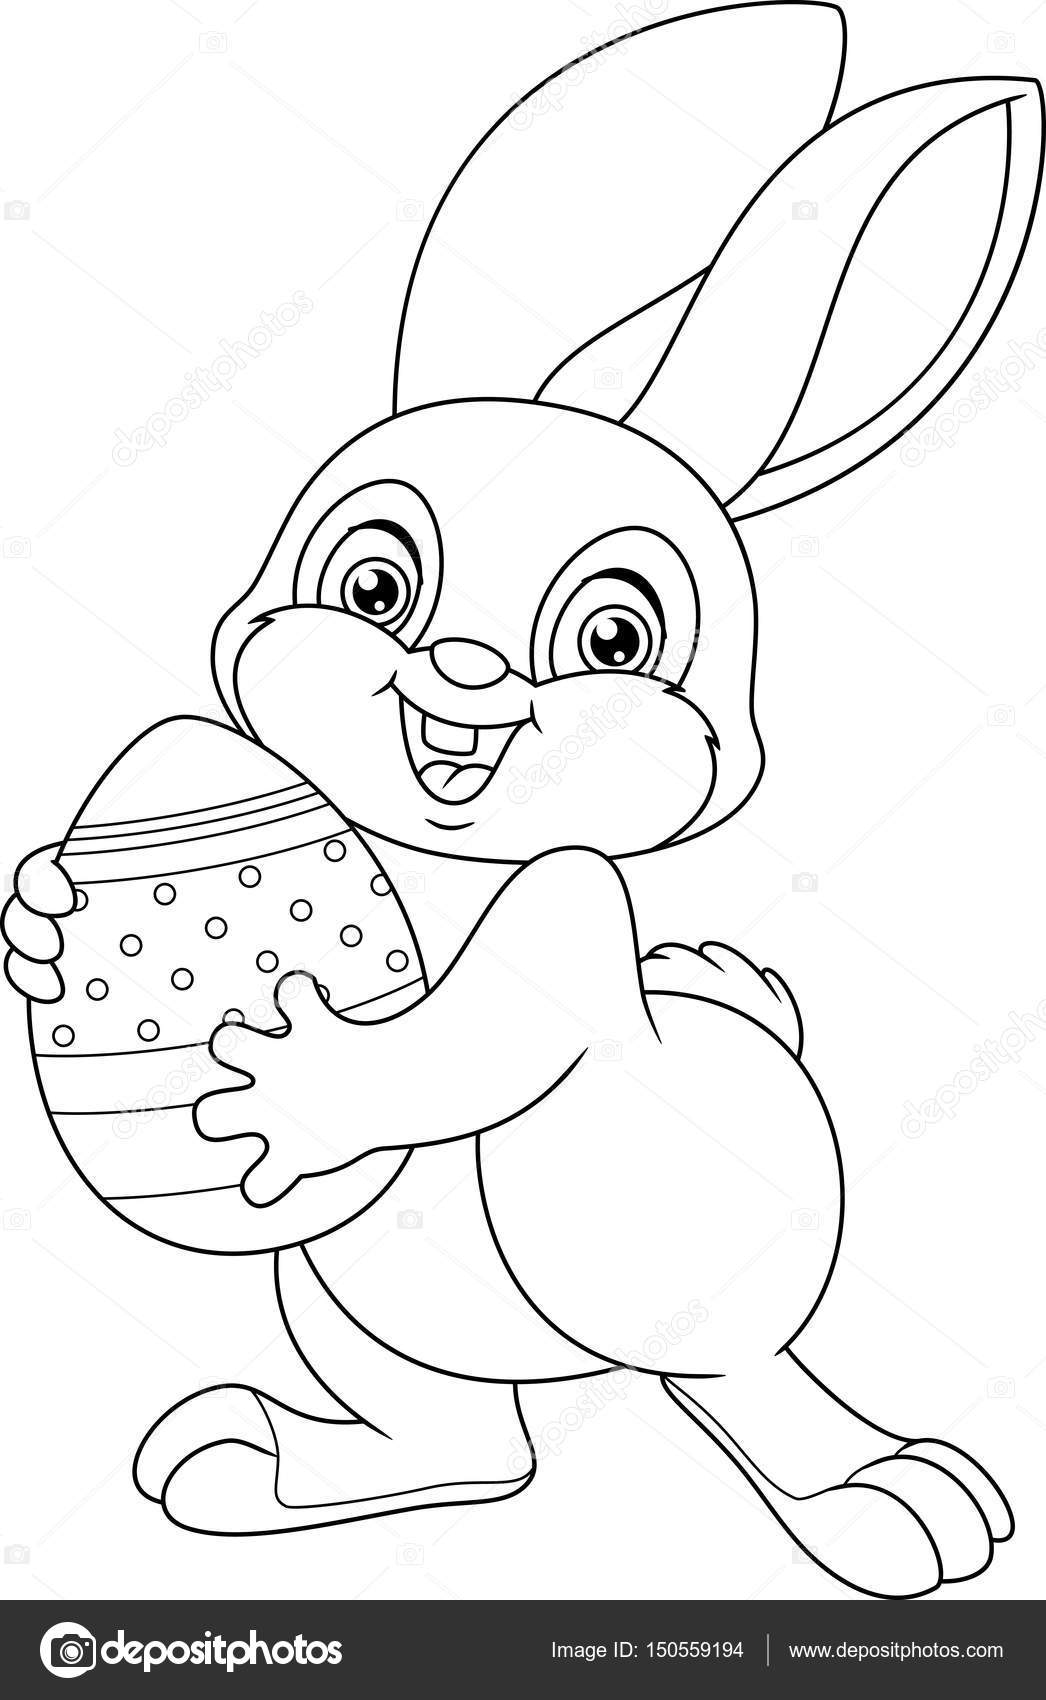 Easter Rabbit Coloring Page Stock Vector C Malyaka 150559194